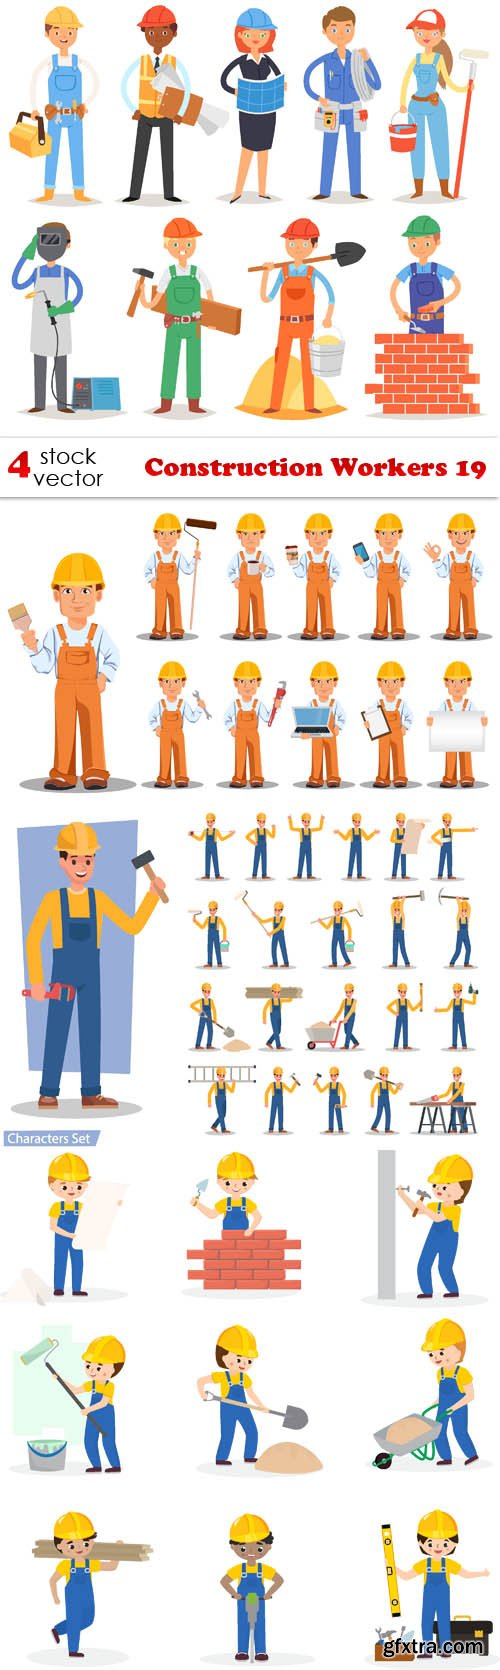 Vectors - Construction Workers 19